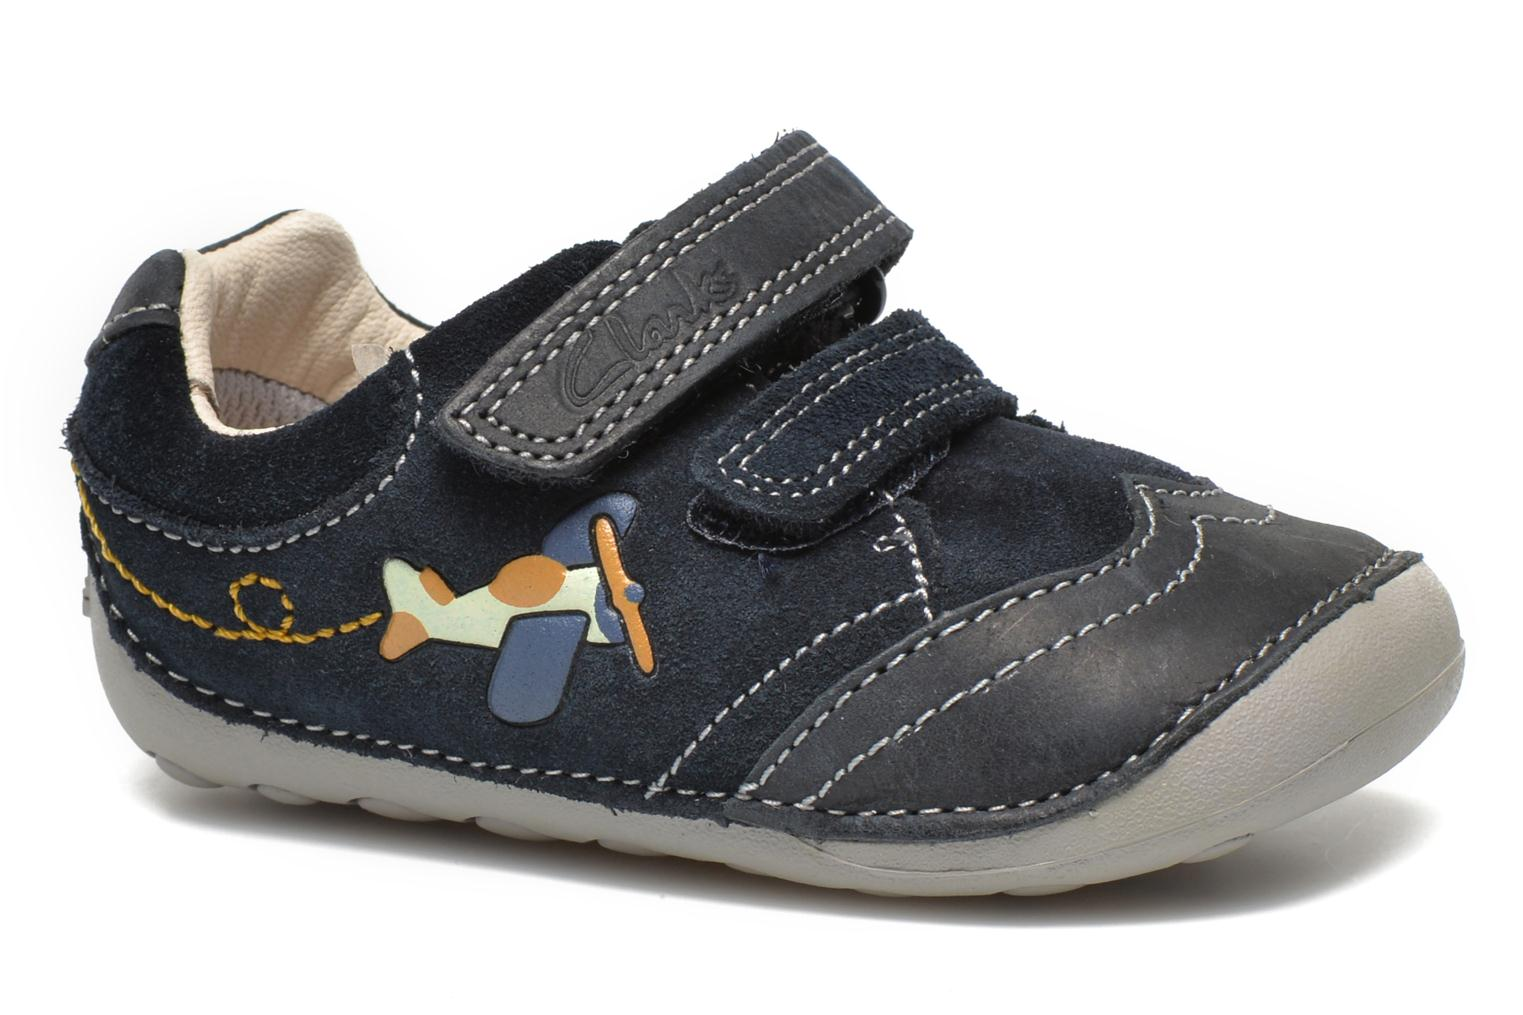 Pantoffels Tiny Liam by Clarks